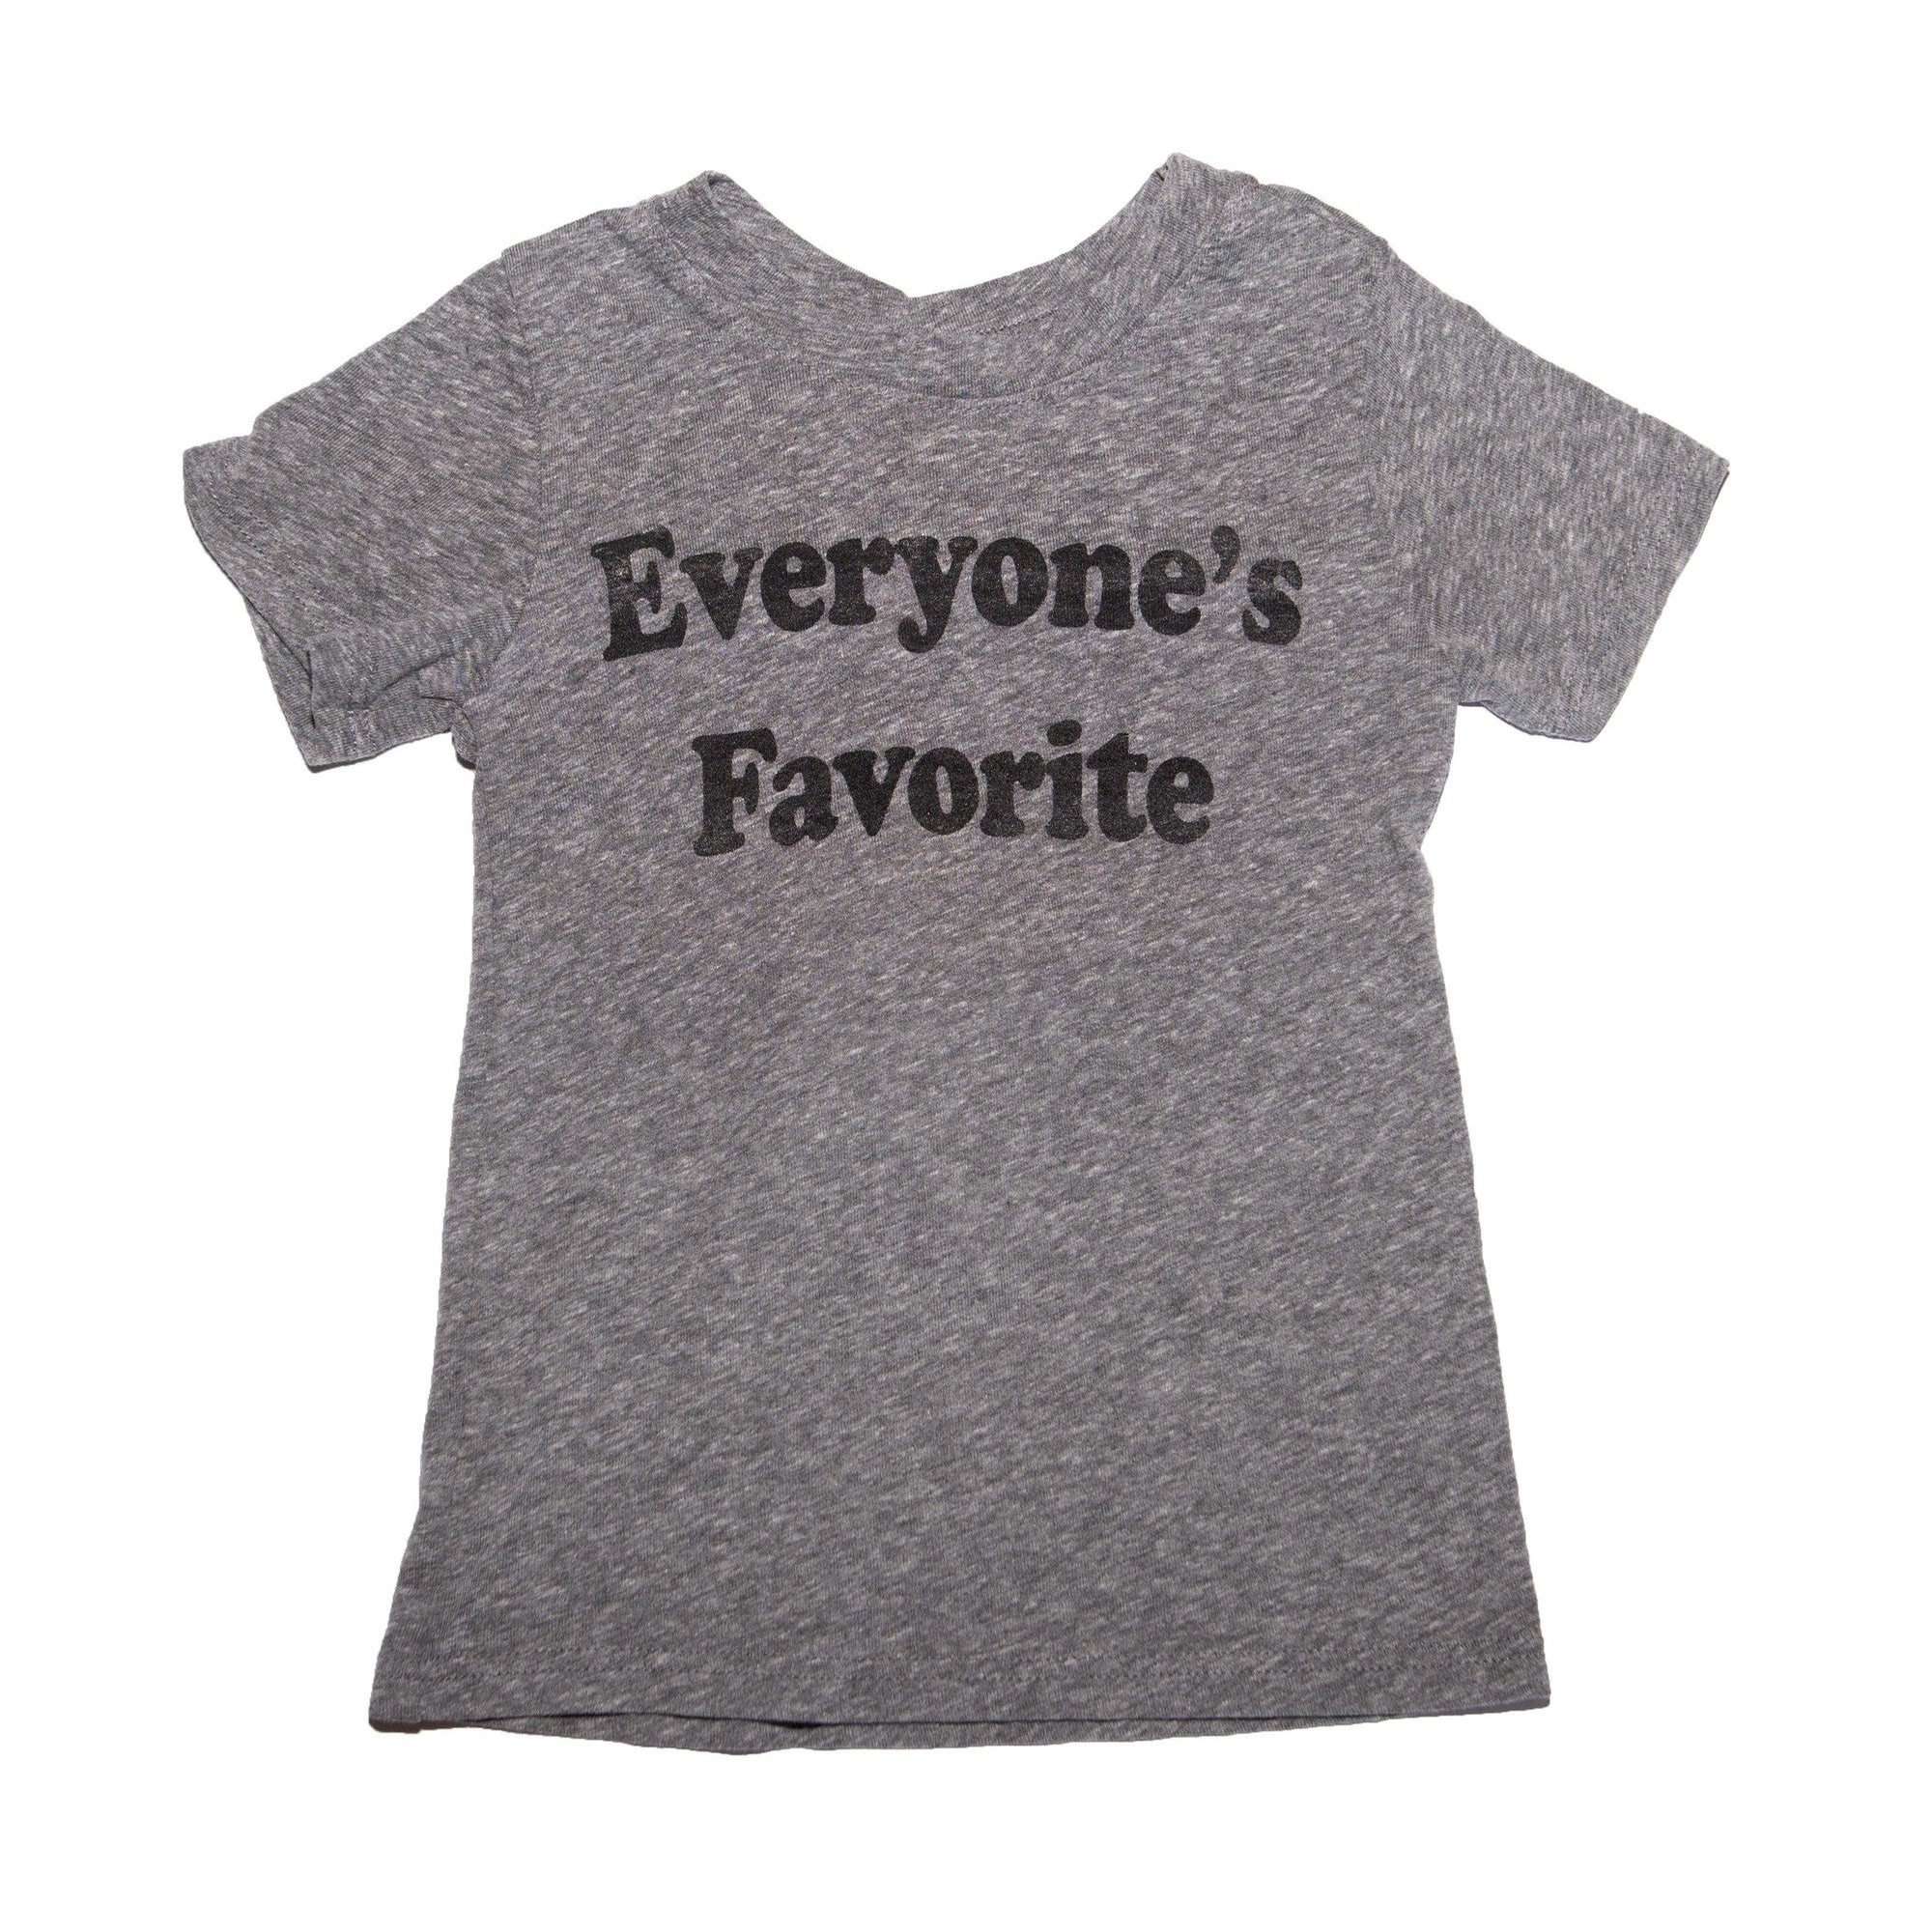 Everyones Favorite Tee (Grey)